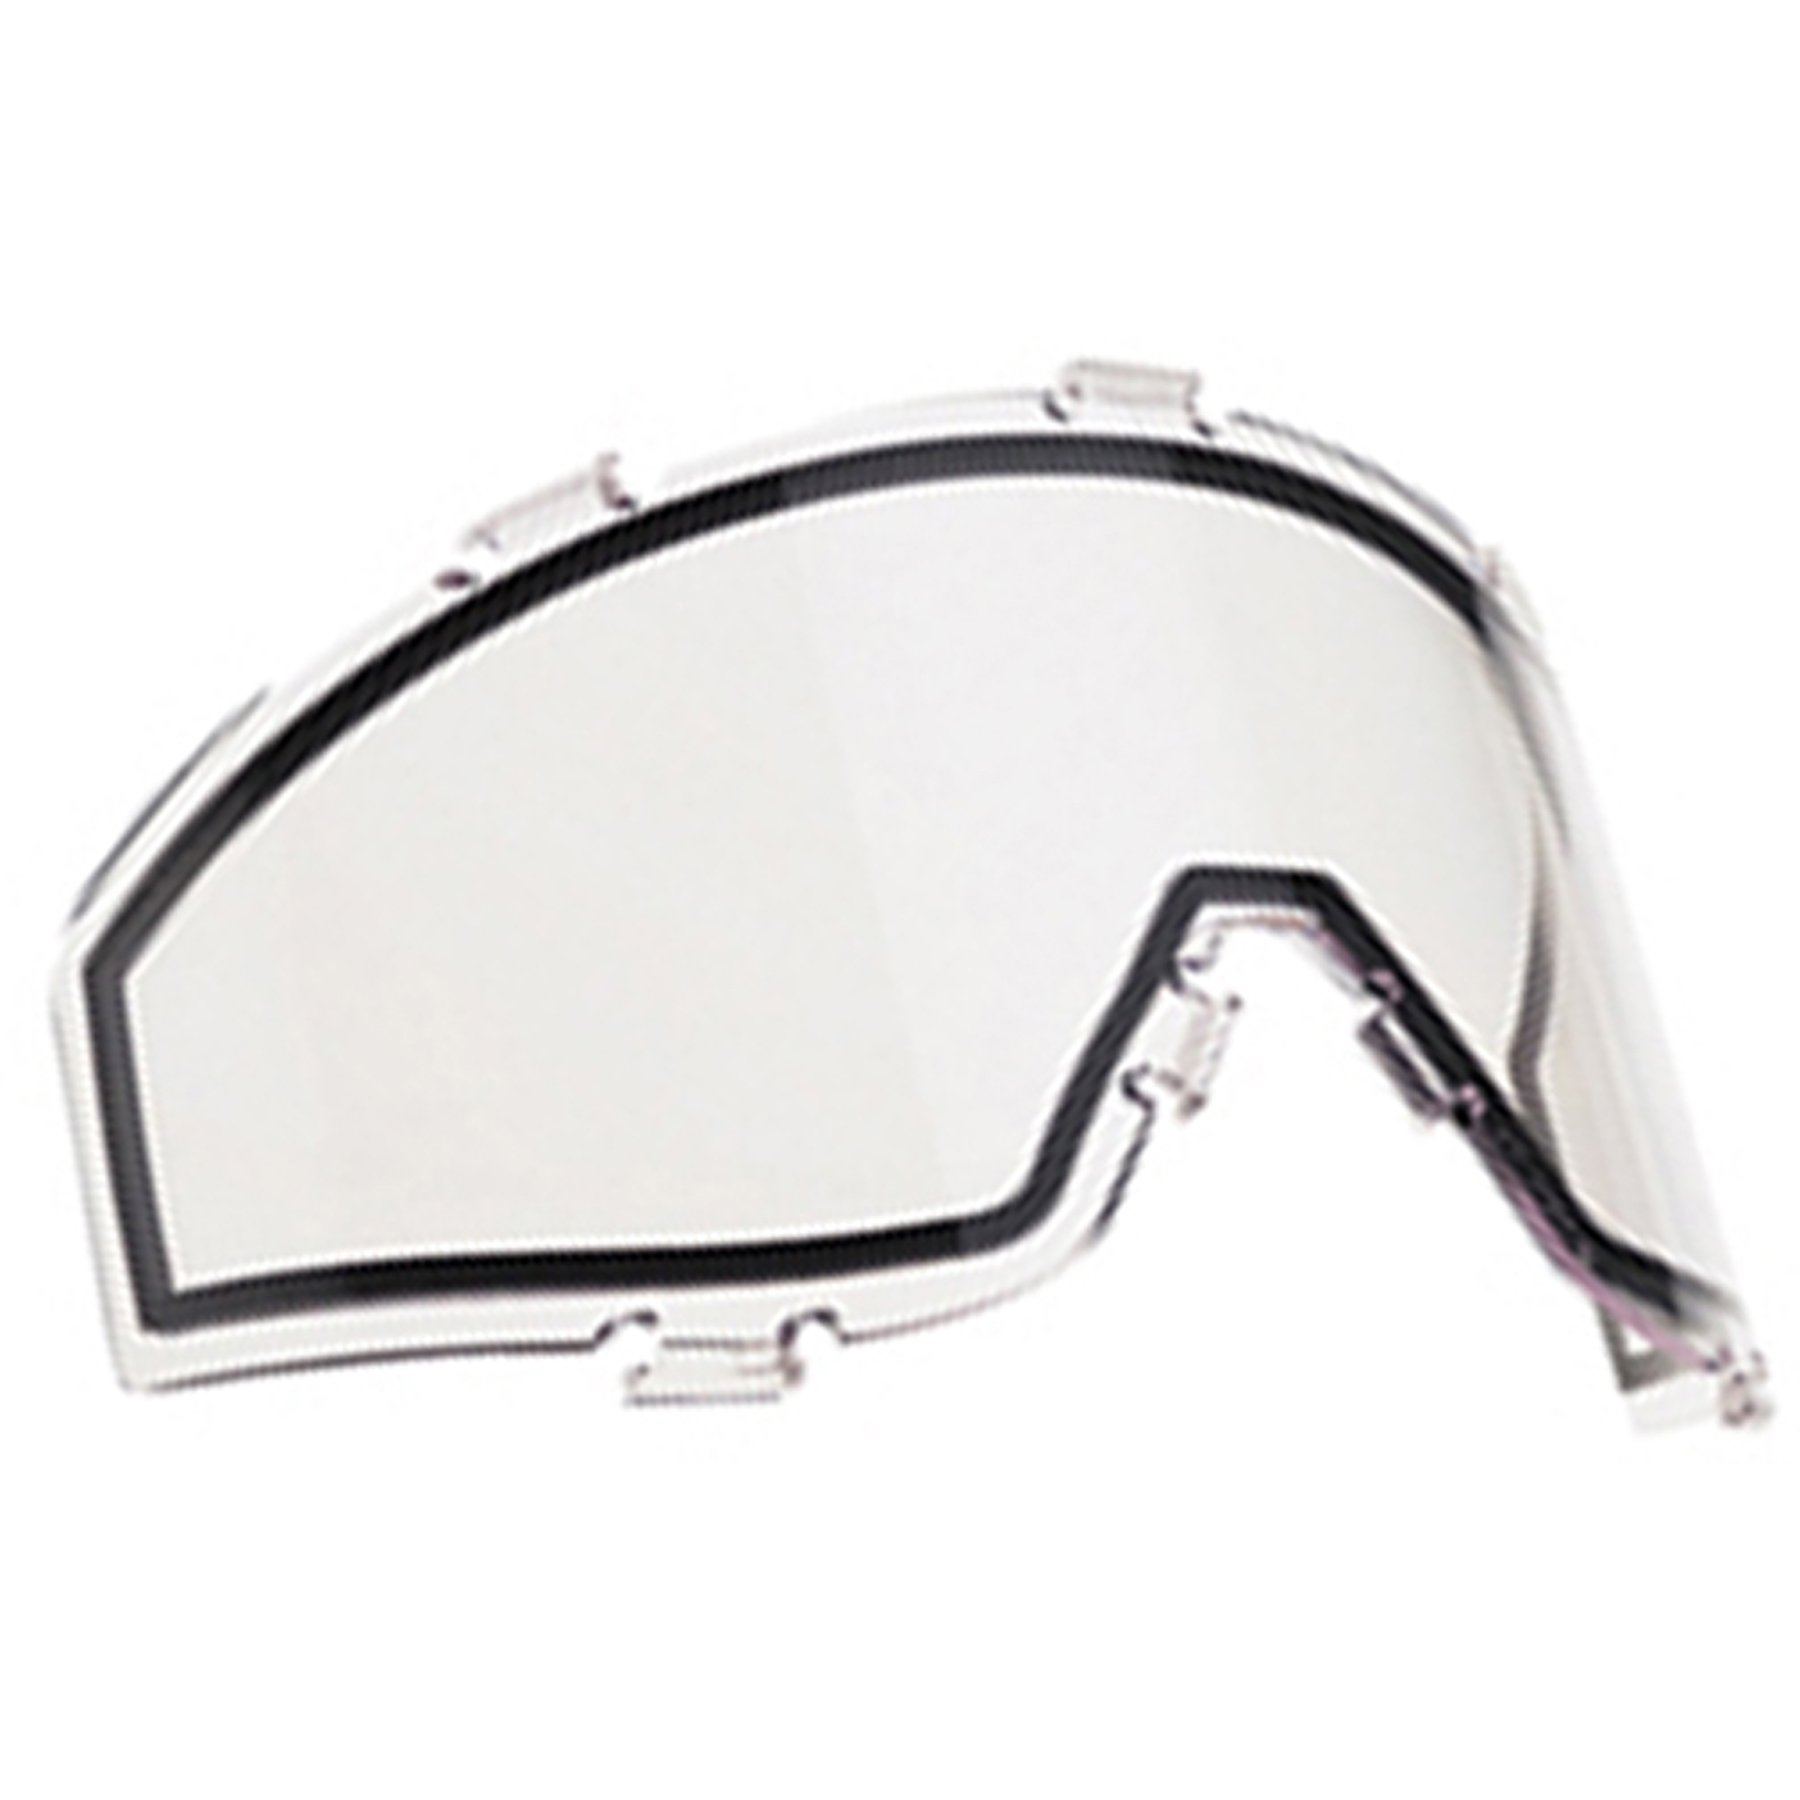 JT Spectra Thermal Lens, Clear by JT